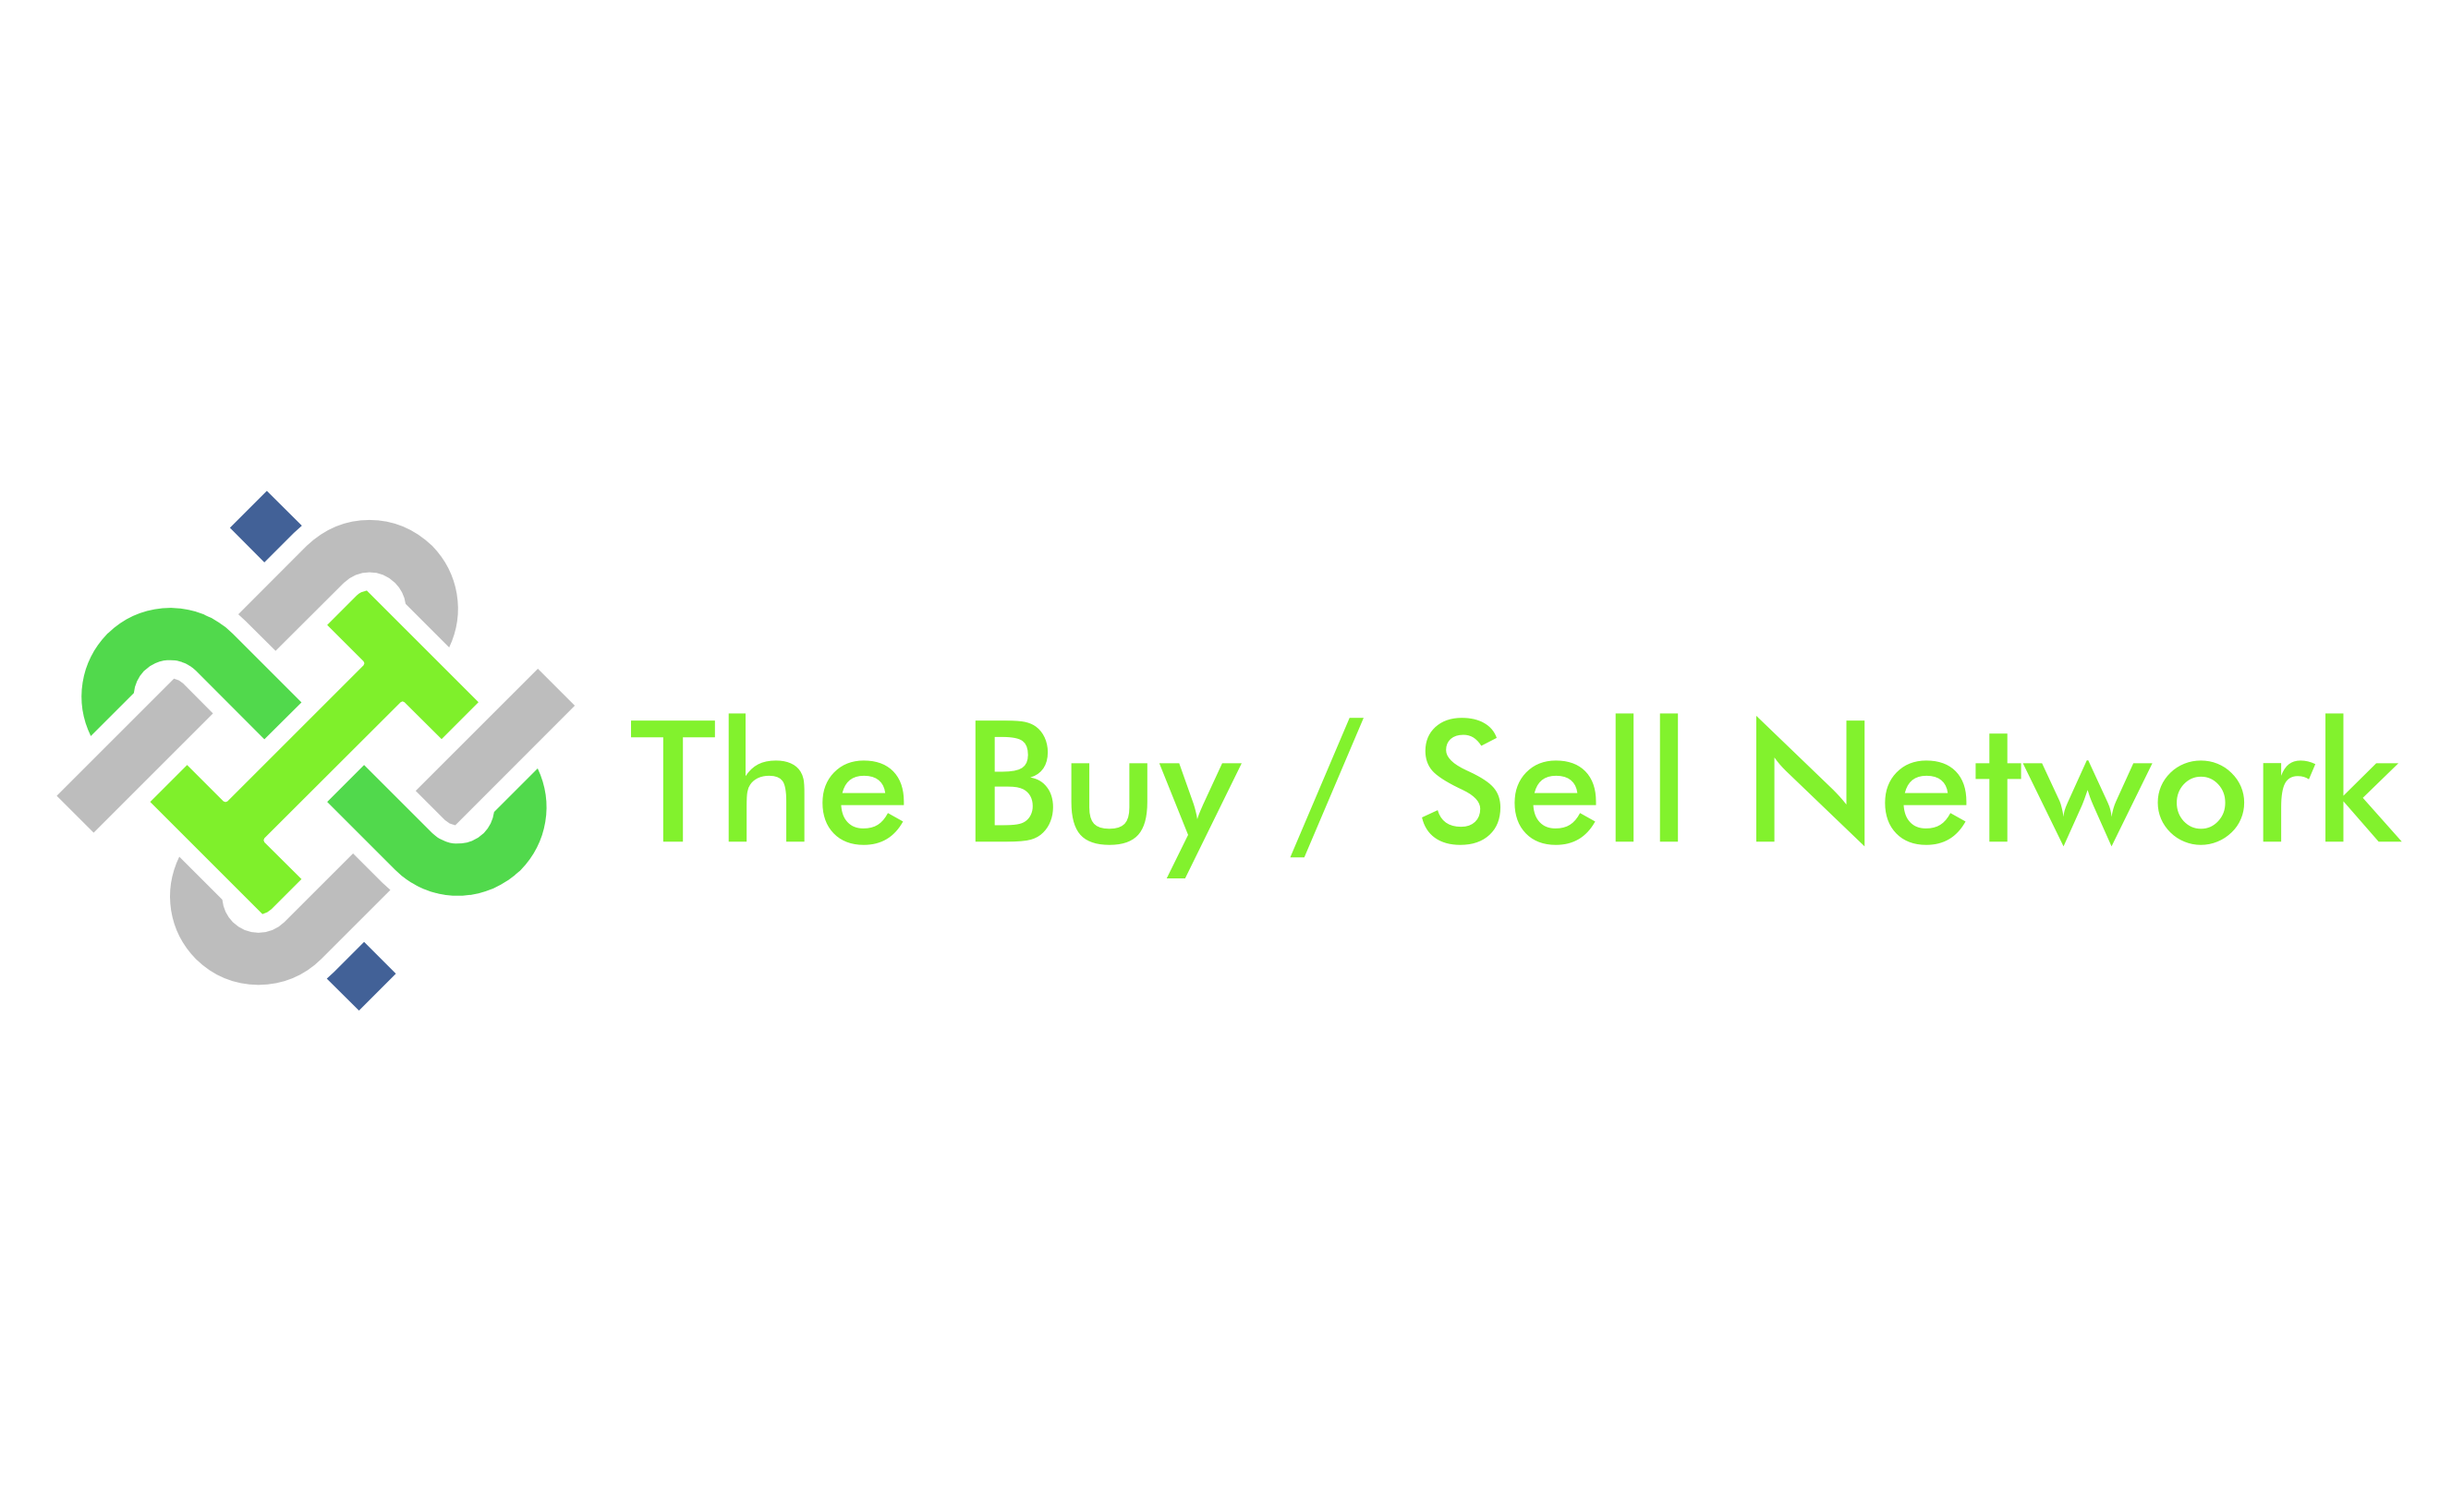 The Buy Sell Network